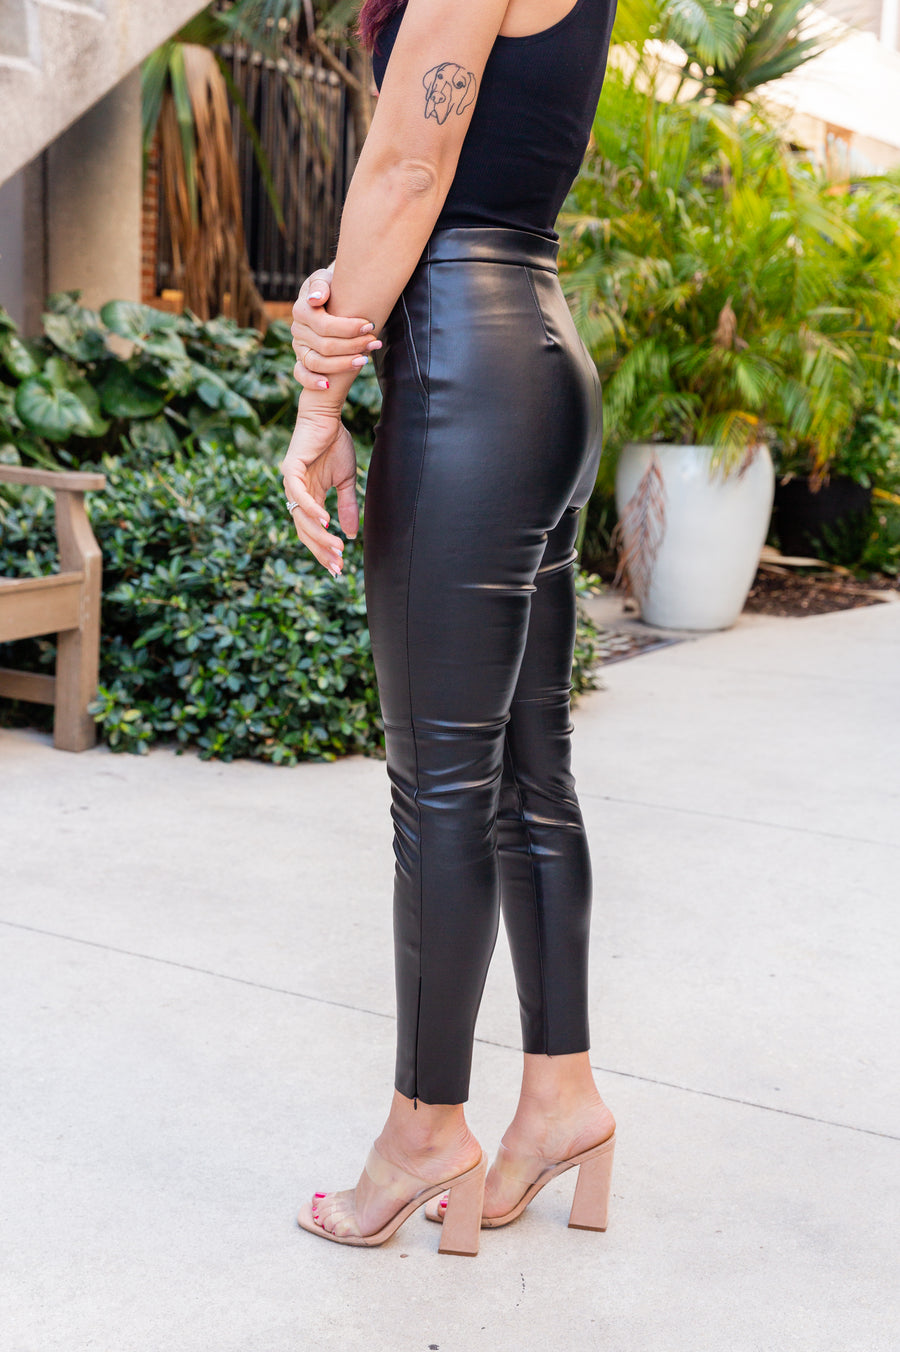 These pleather pants have a fitted waistband with a button and zipper fly and go into fitted and sleek skinny pant legs. Style these faux leather pants with your favorite cropped band tee.